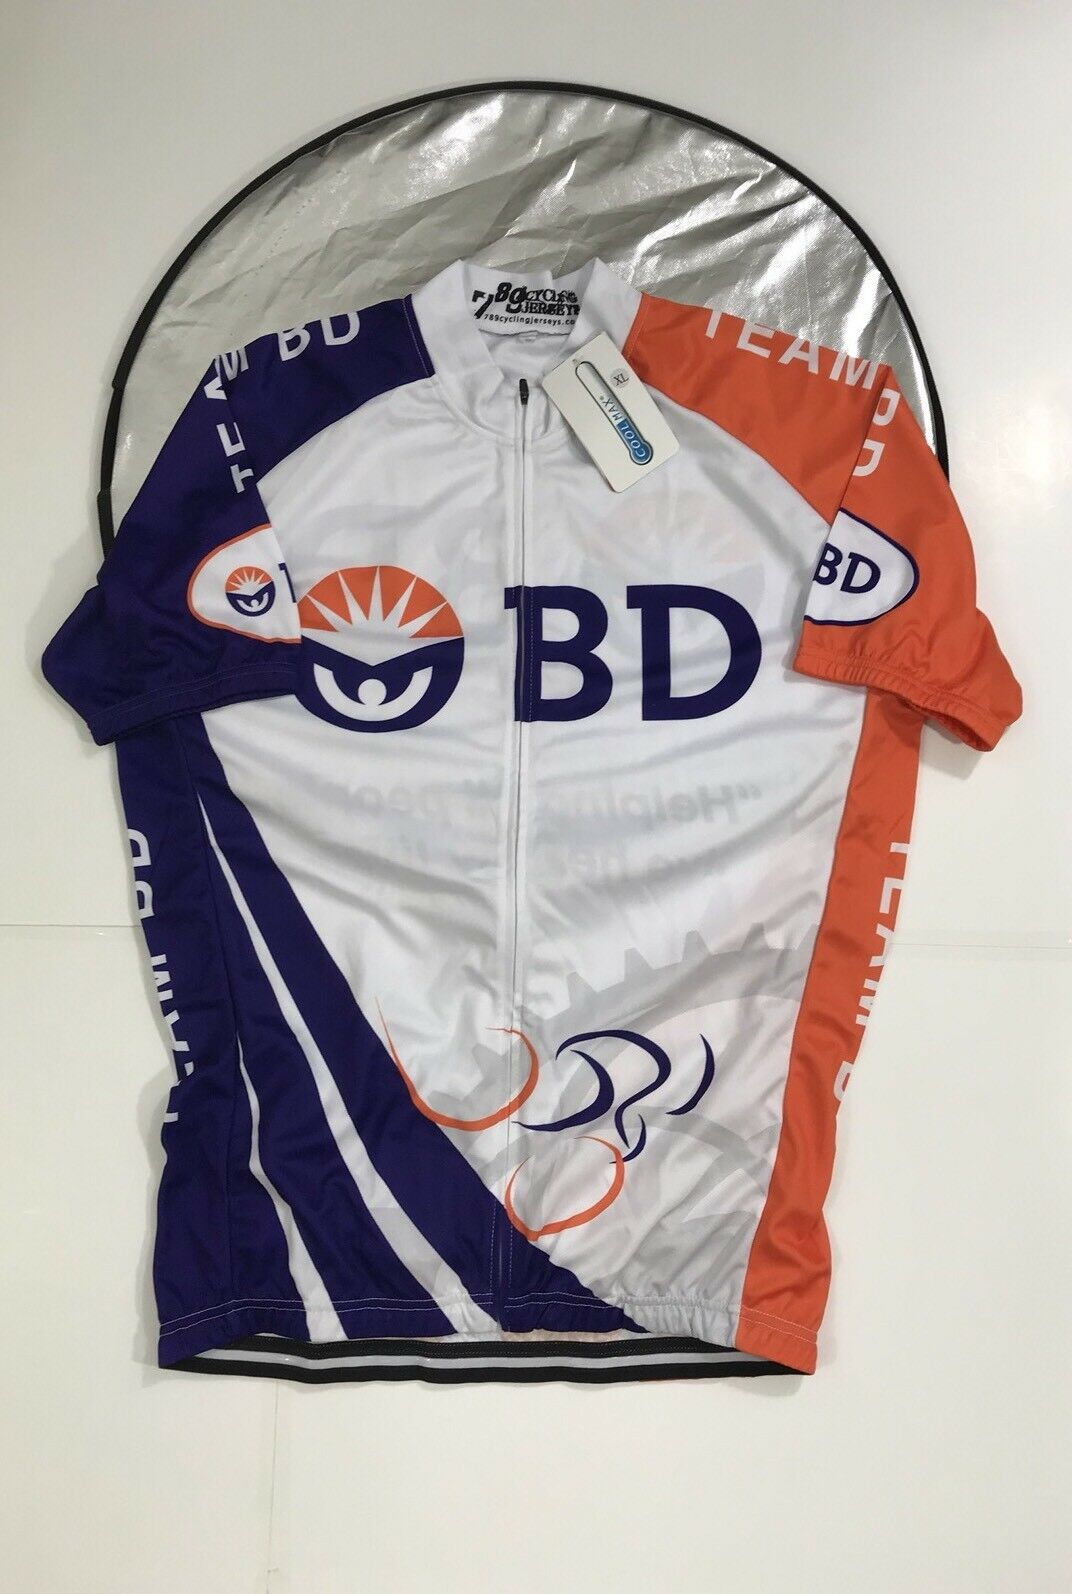 789 Cyling jersey BD  helping  all people live healthy  Jersey size XL  exciting promotions